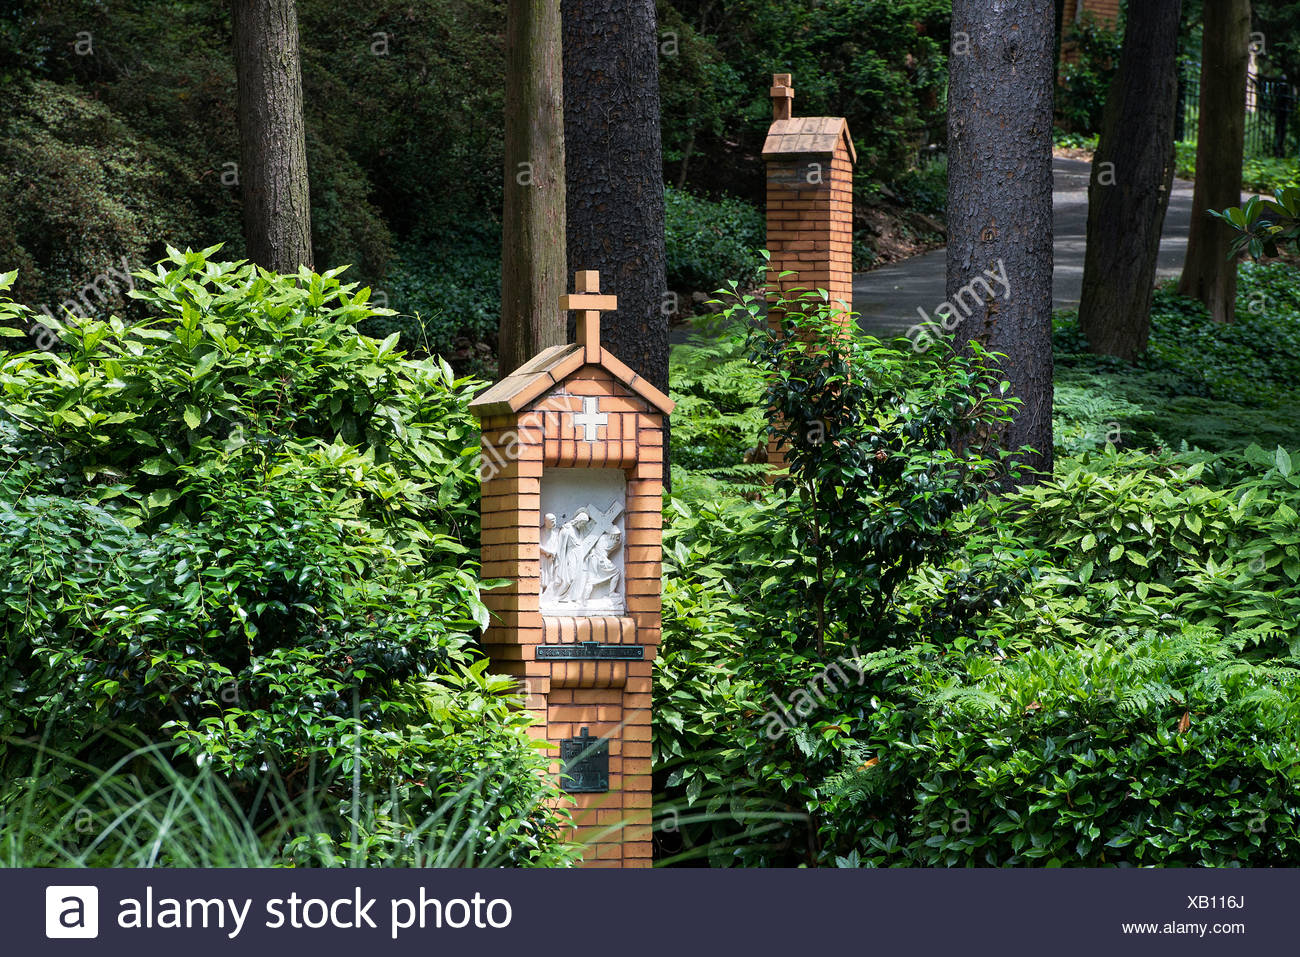 Stations of the Cross, Franciscan Monastery of the Holy Land in America, Washington DC, USA - Stock Image